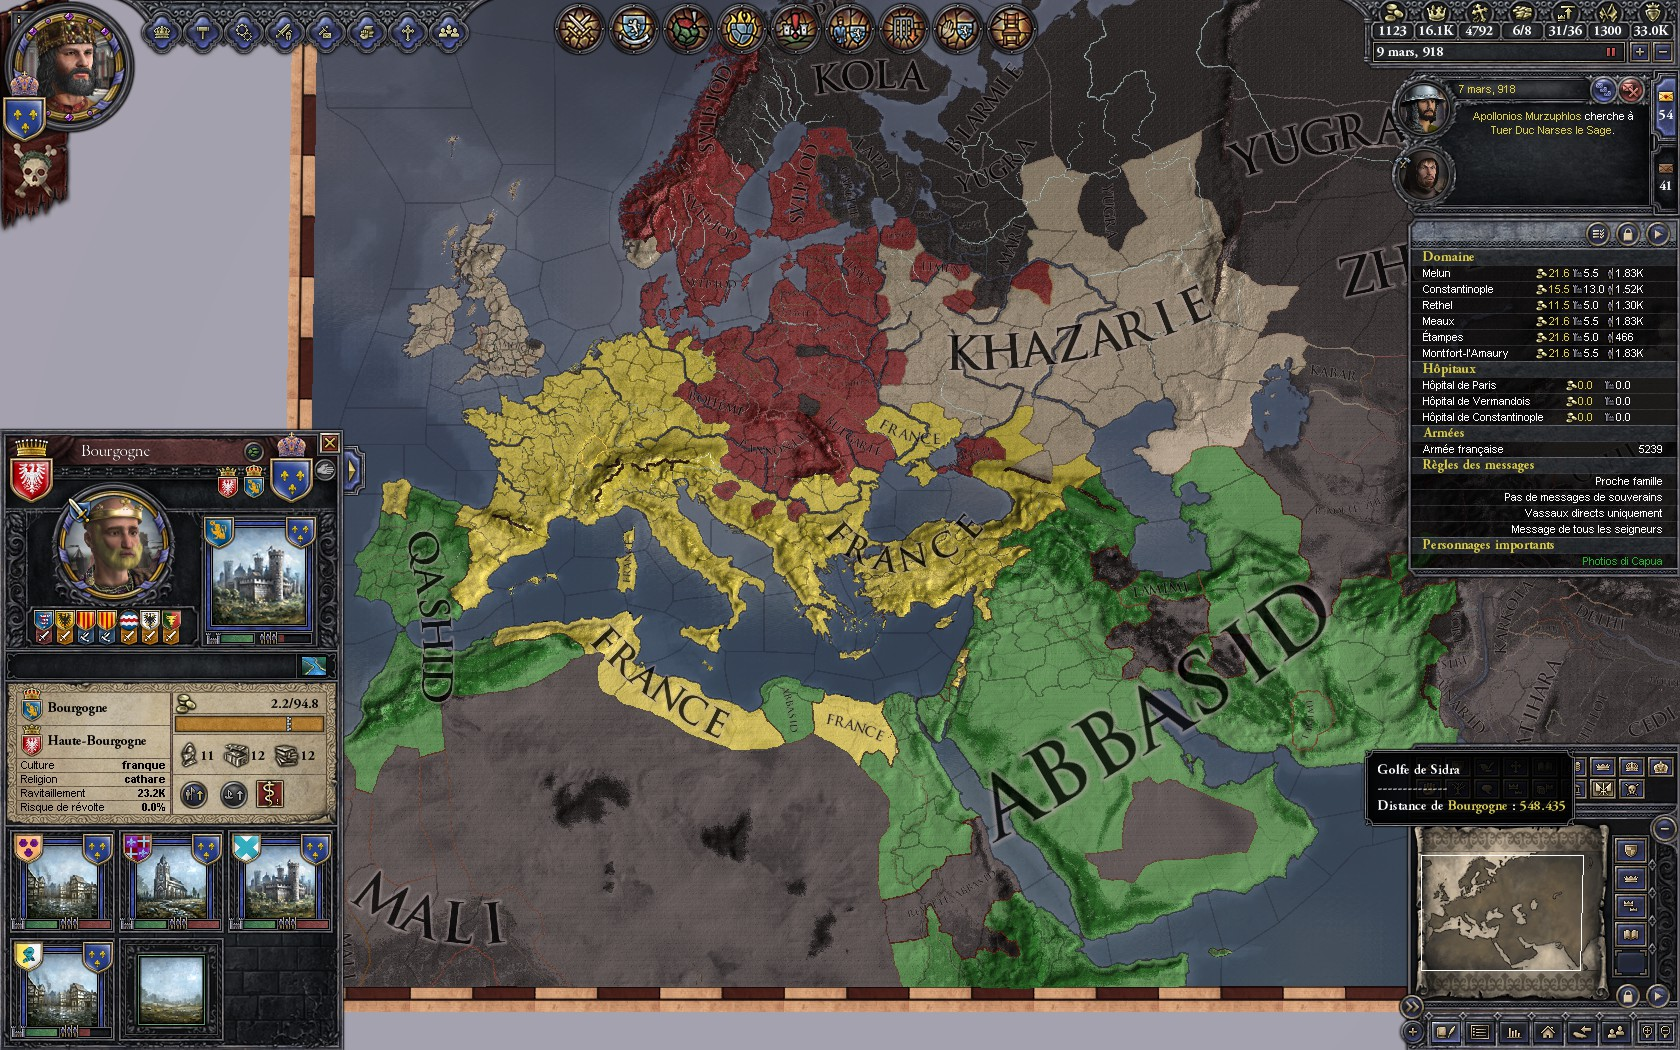 Defensive pact is just an other way to color the map